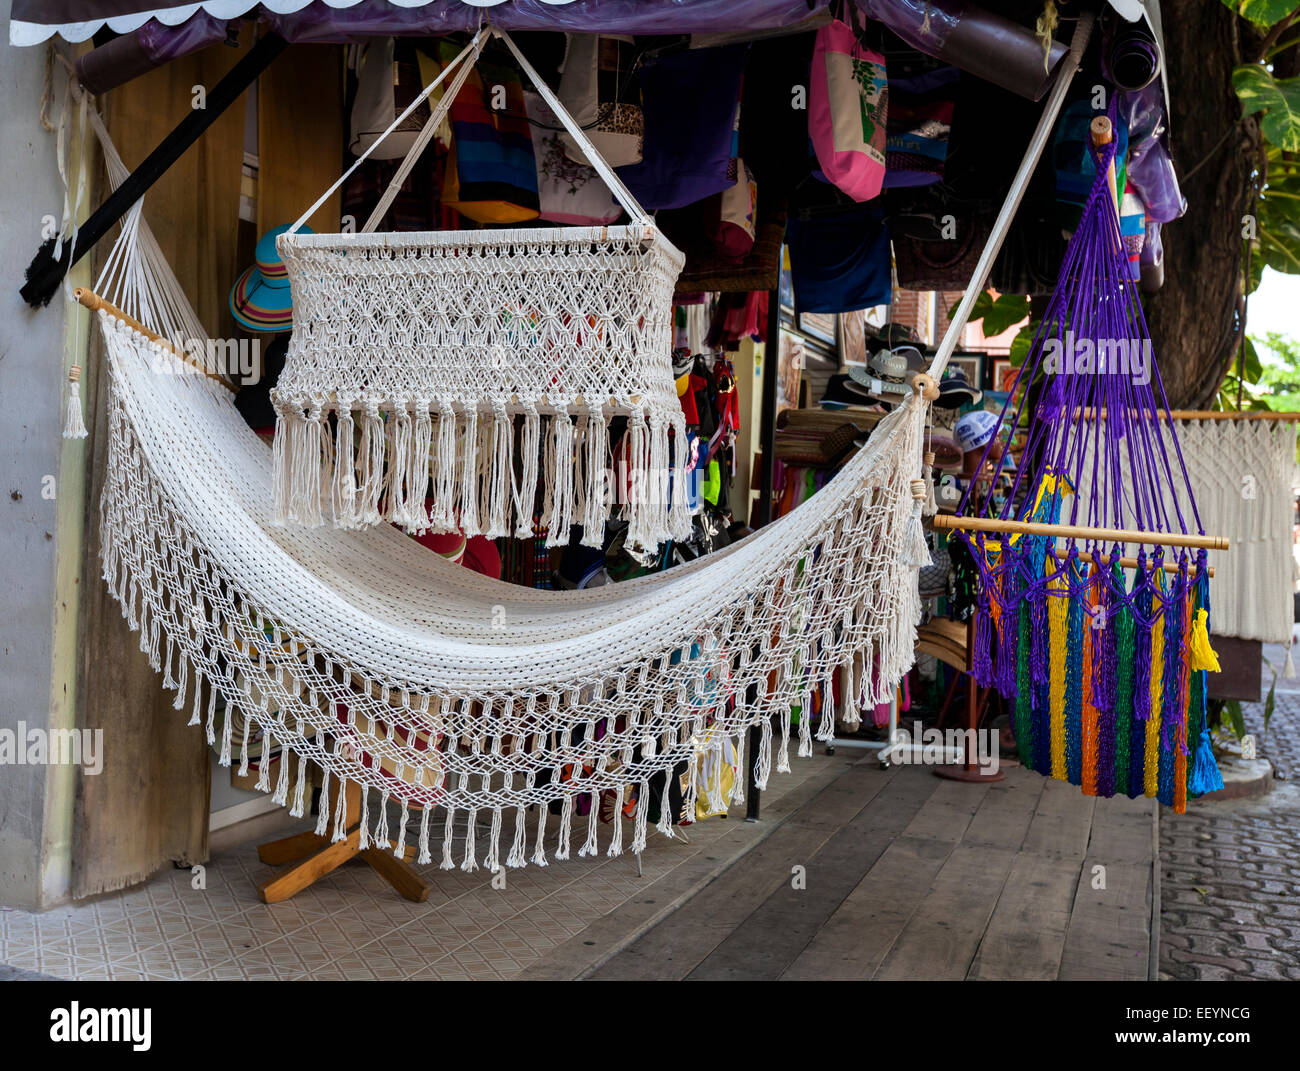 Baby crib hammock - Hammock Baby Crib For Sale In A Souvenir Shop Playa Del Carmen Riviera Maya Yucatan Mexico